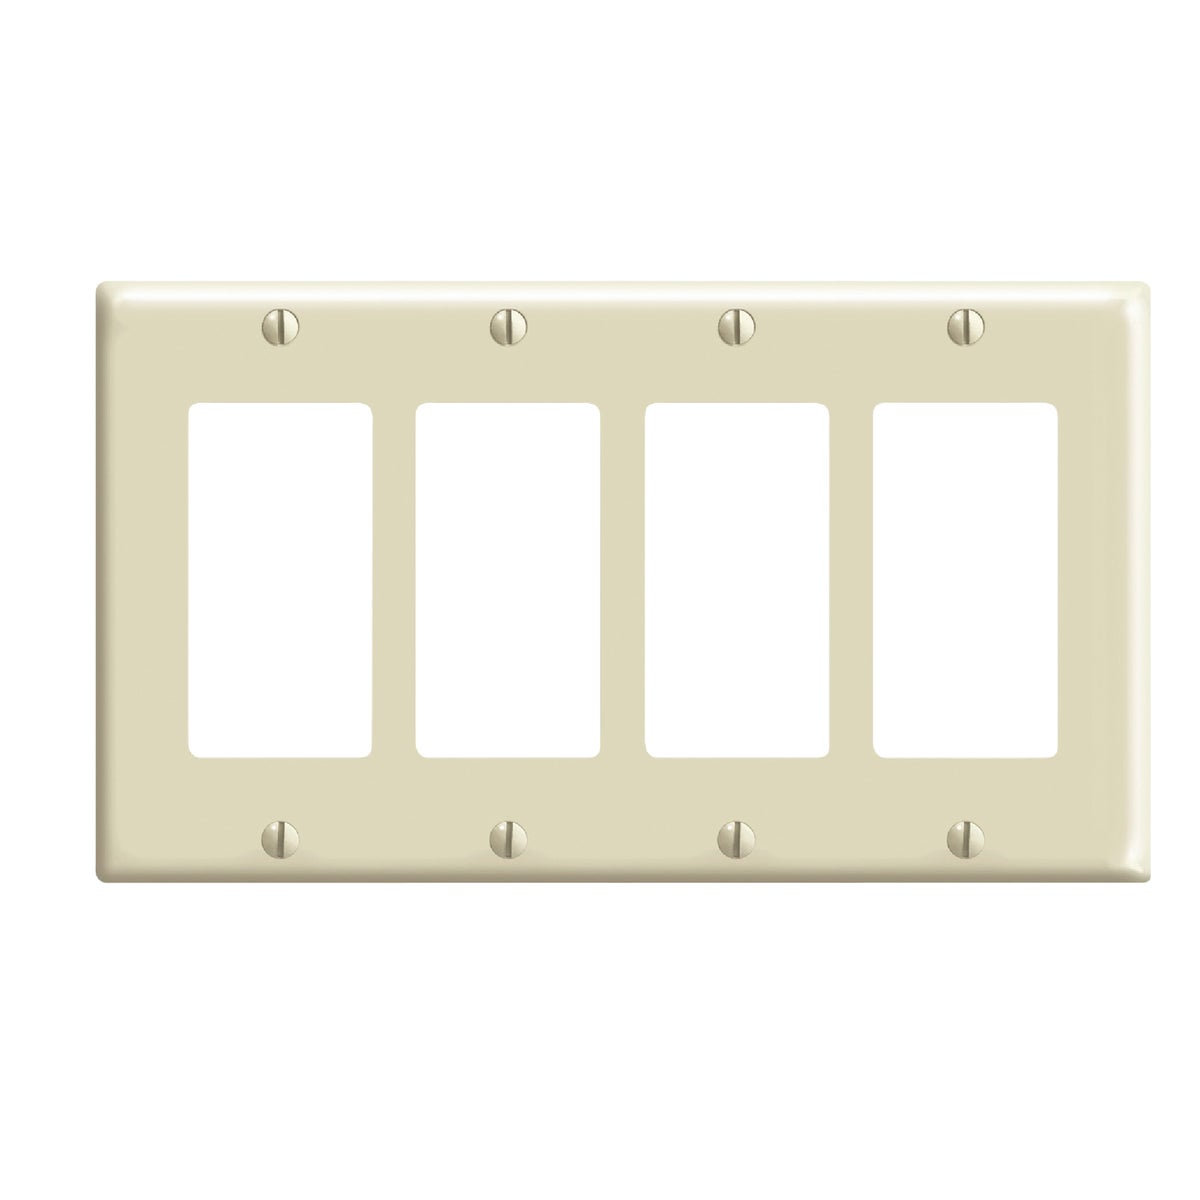 IV 4-ROCKER WALL PLATE - 80412I by Leviton Mfg Co